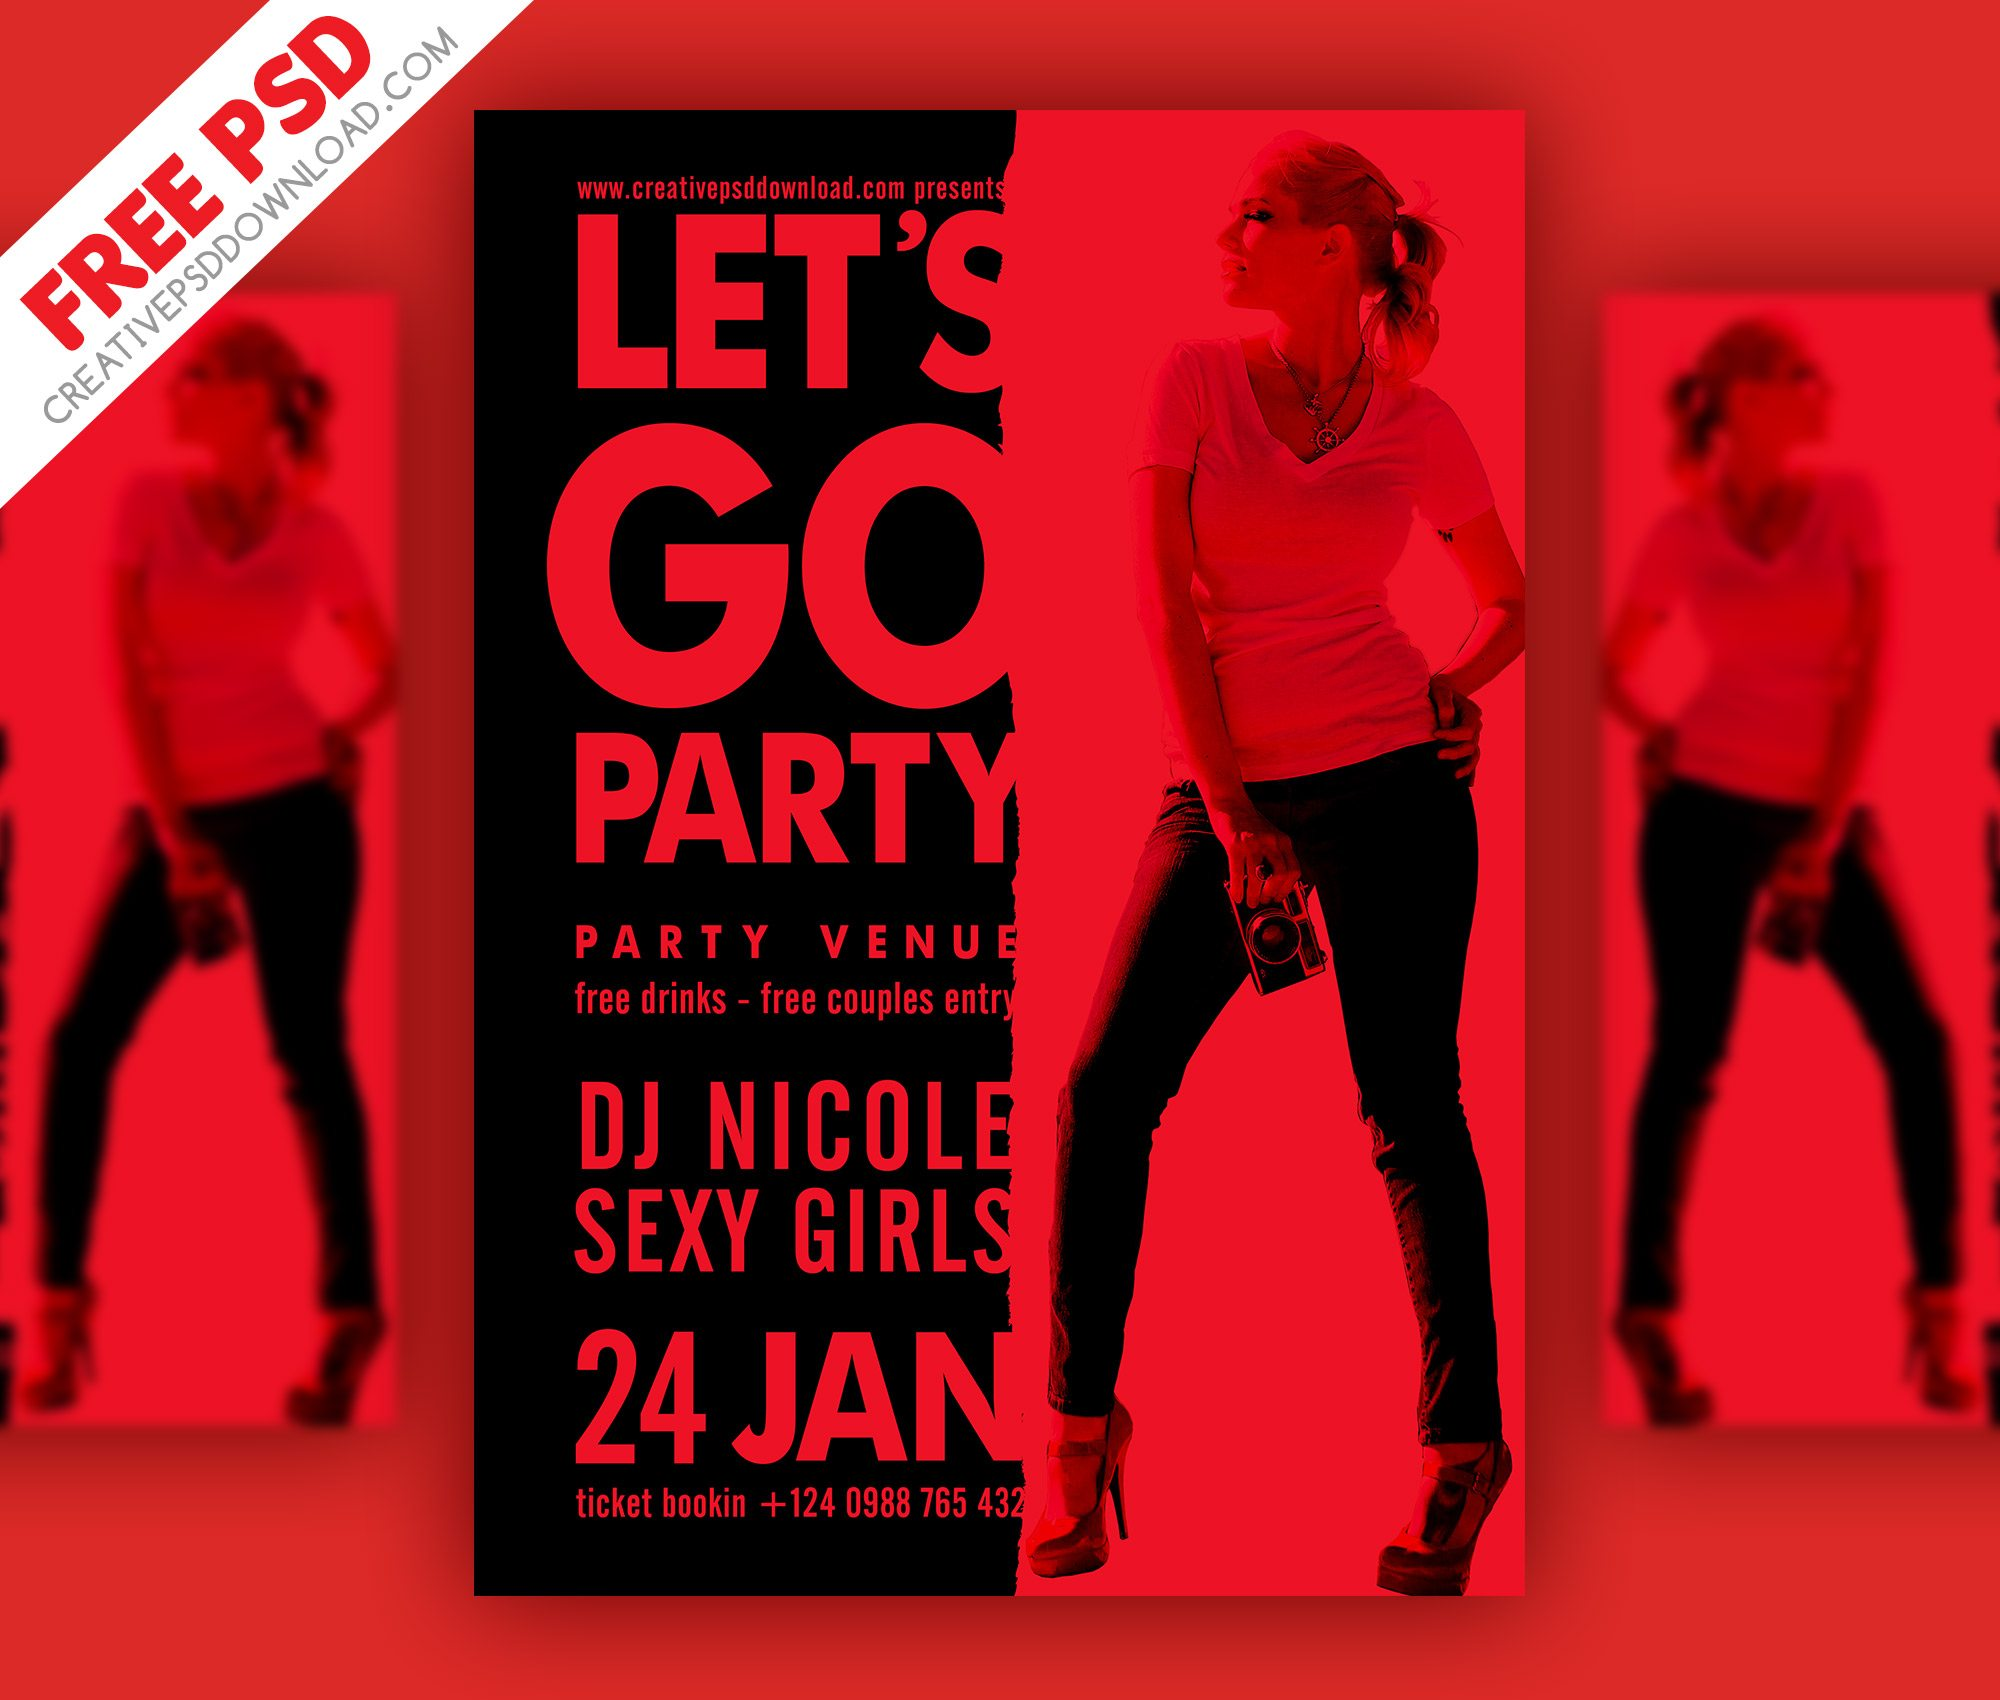 minimalist flyer template,minimalist flyer design,minimal flyer template free,minimal flyer psd,free psd flyer templates 2015,free rave flyer templates,club flyer psd,pool party flyer psd free download,